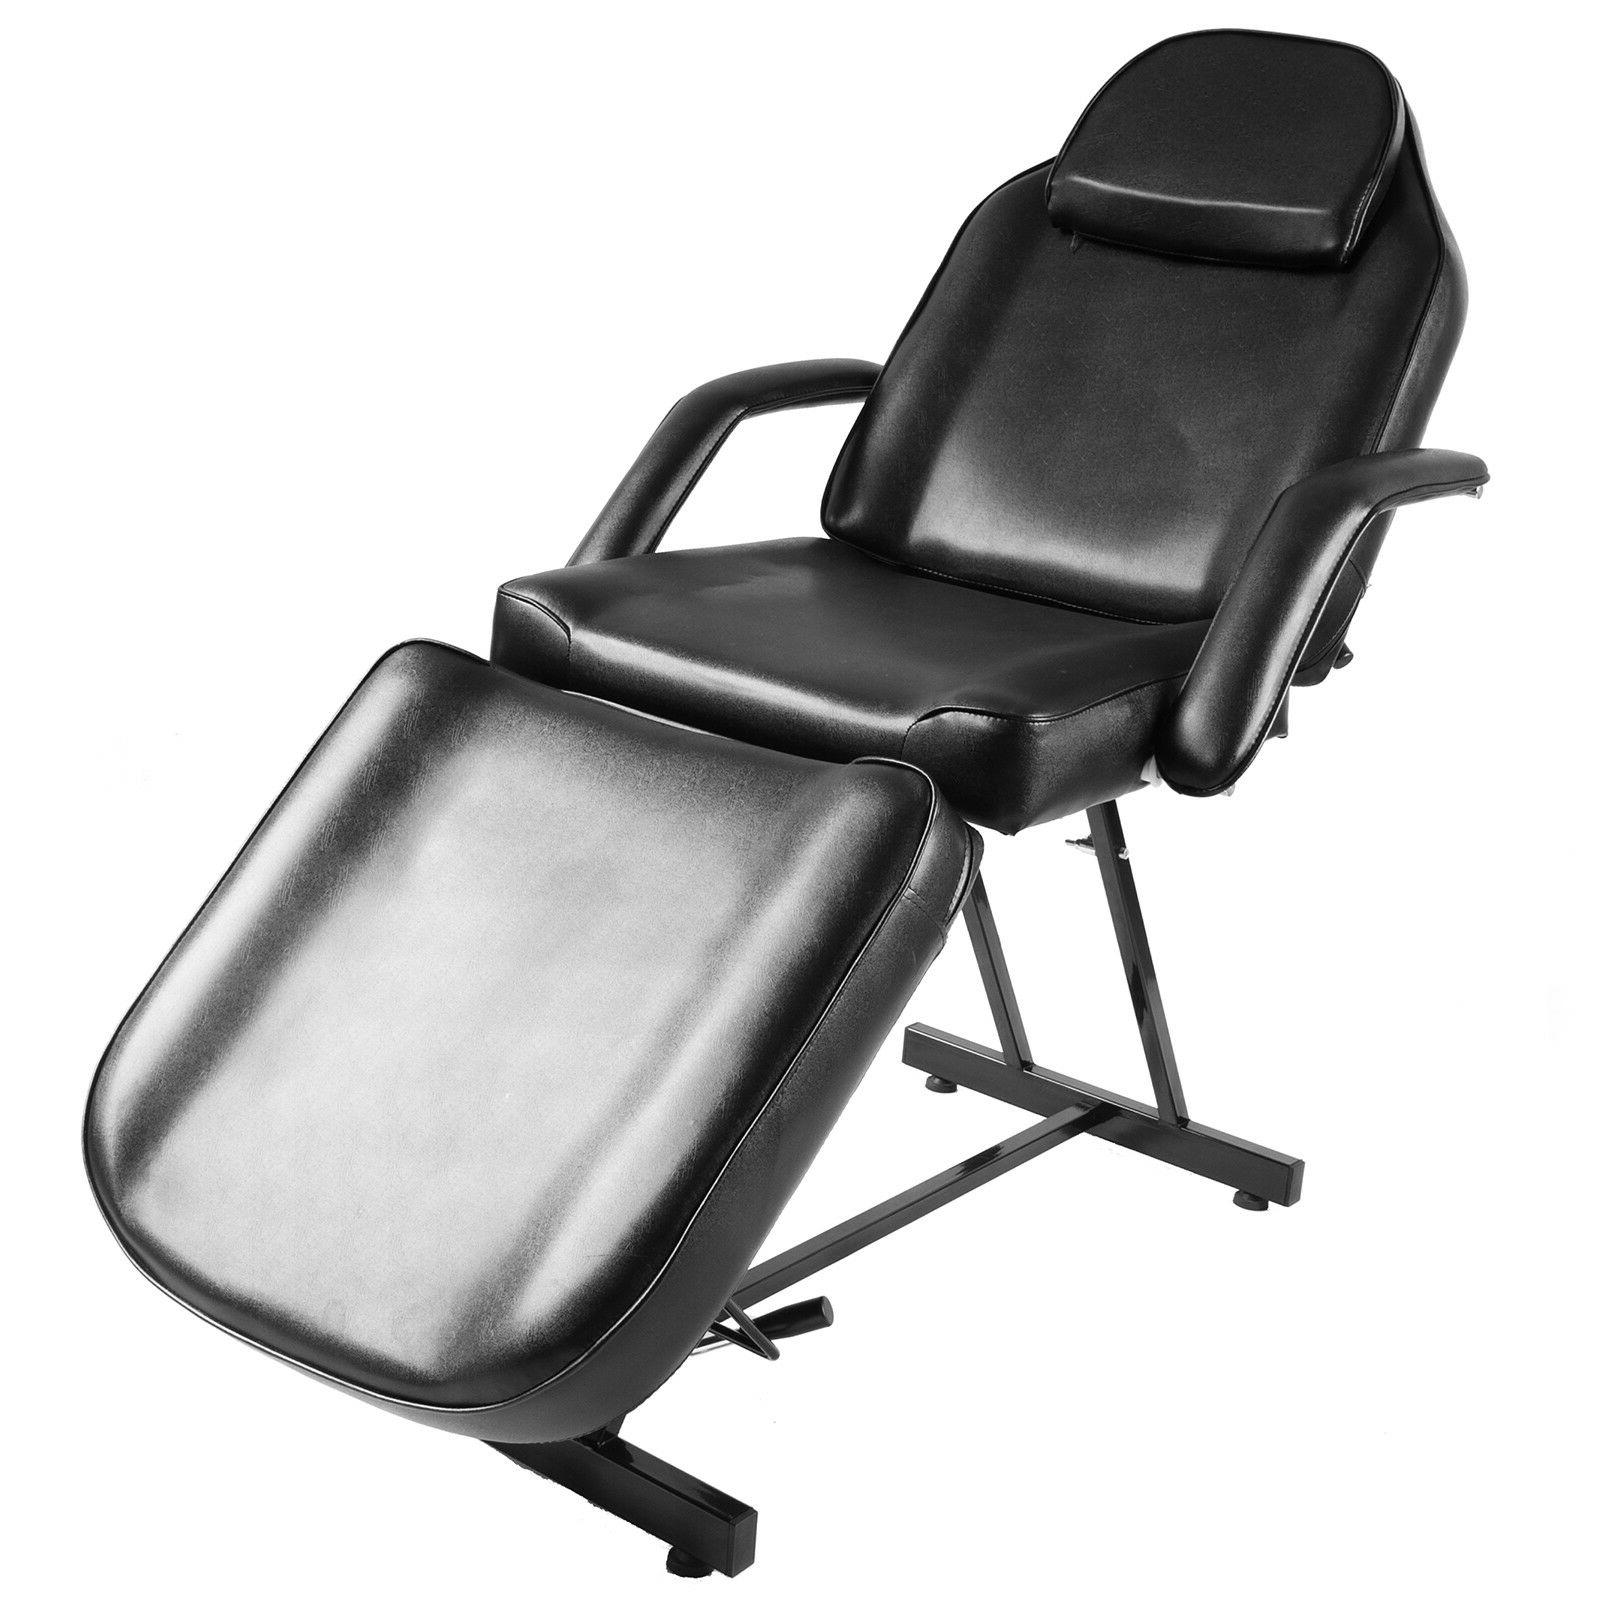 Adjustable Bed Salon Tattoo Barber Spa And